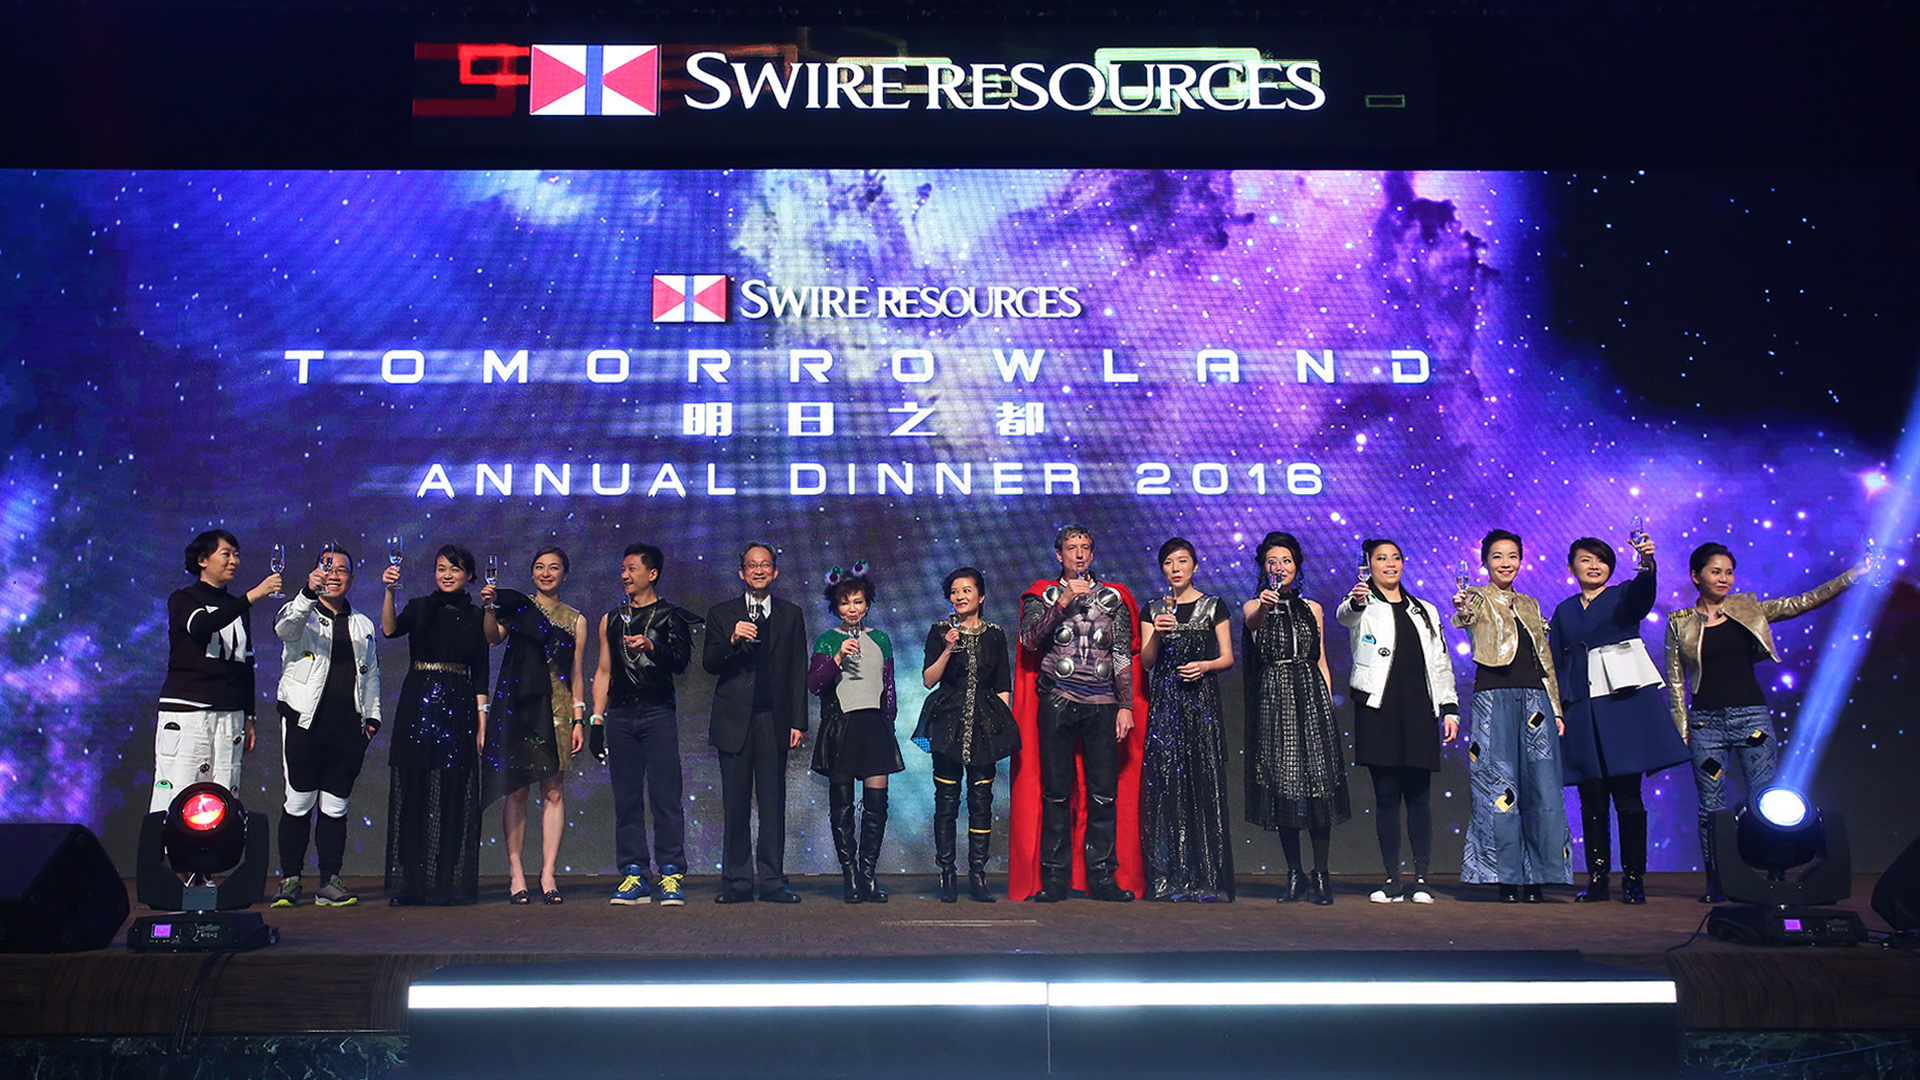 Swire Resources Annual Dinner 2016